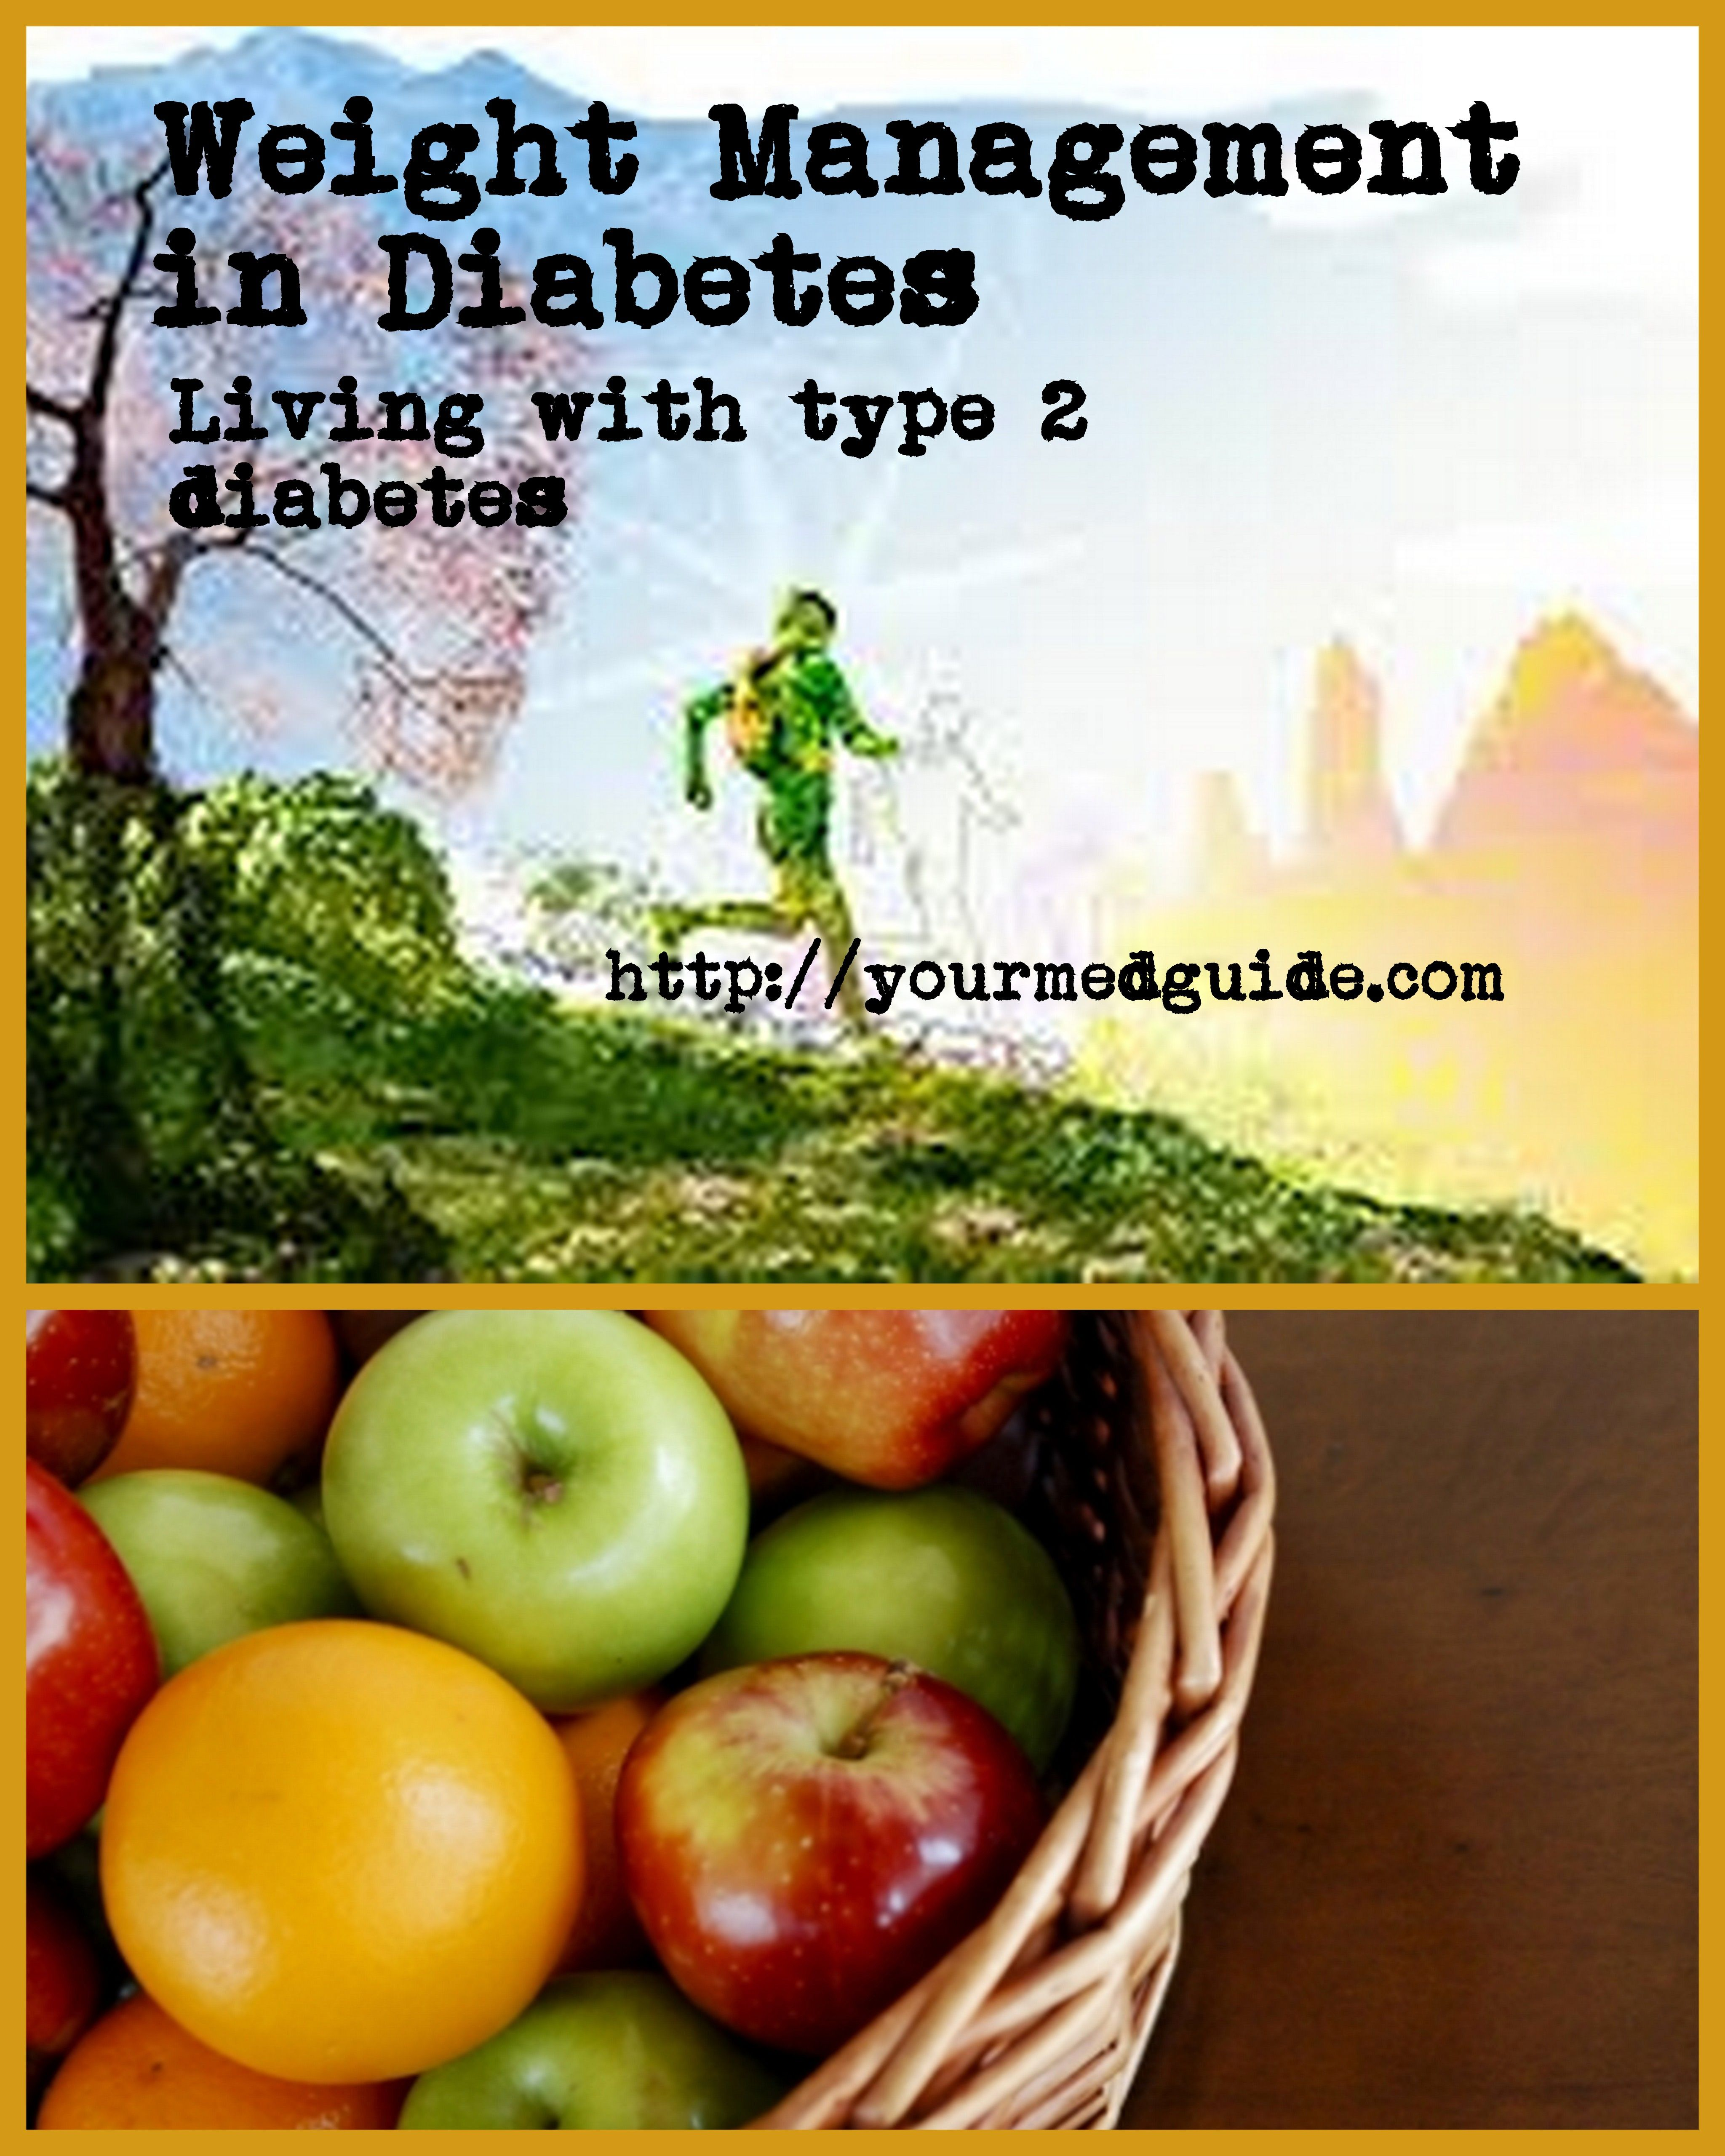 The Benefits of Weight Management in Diabetes - Be Healthy, Be Happy